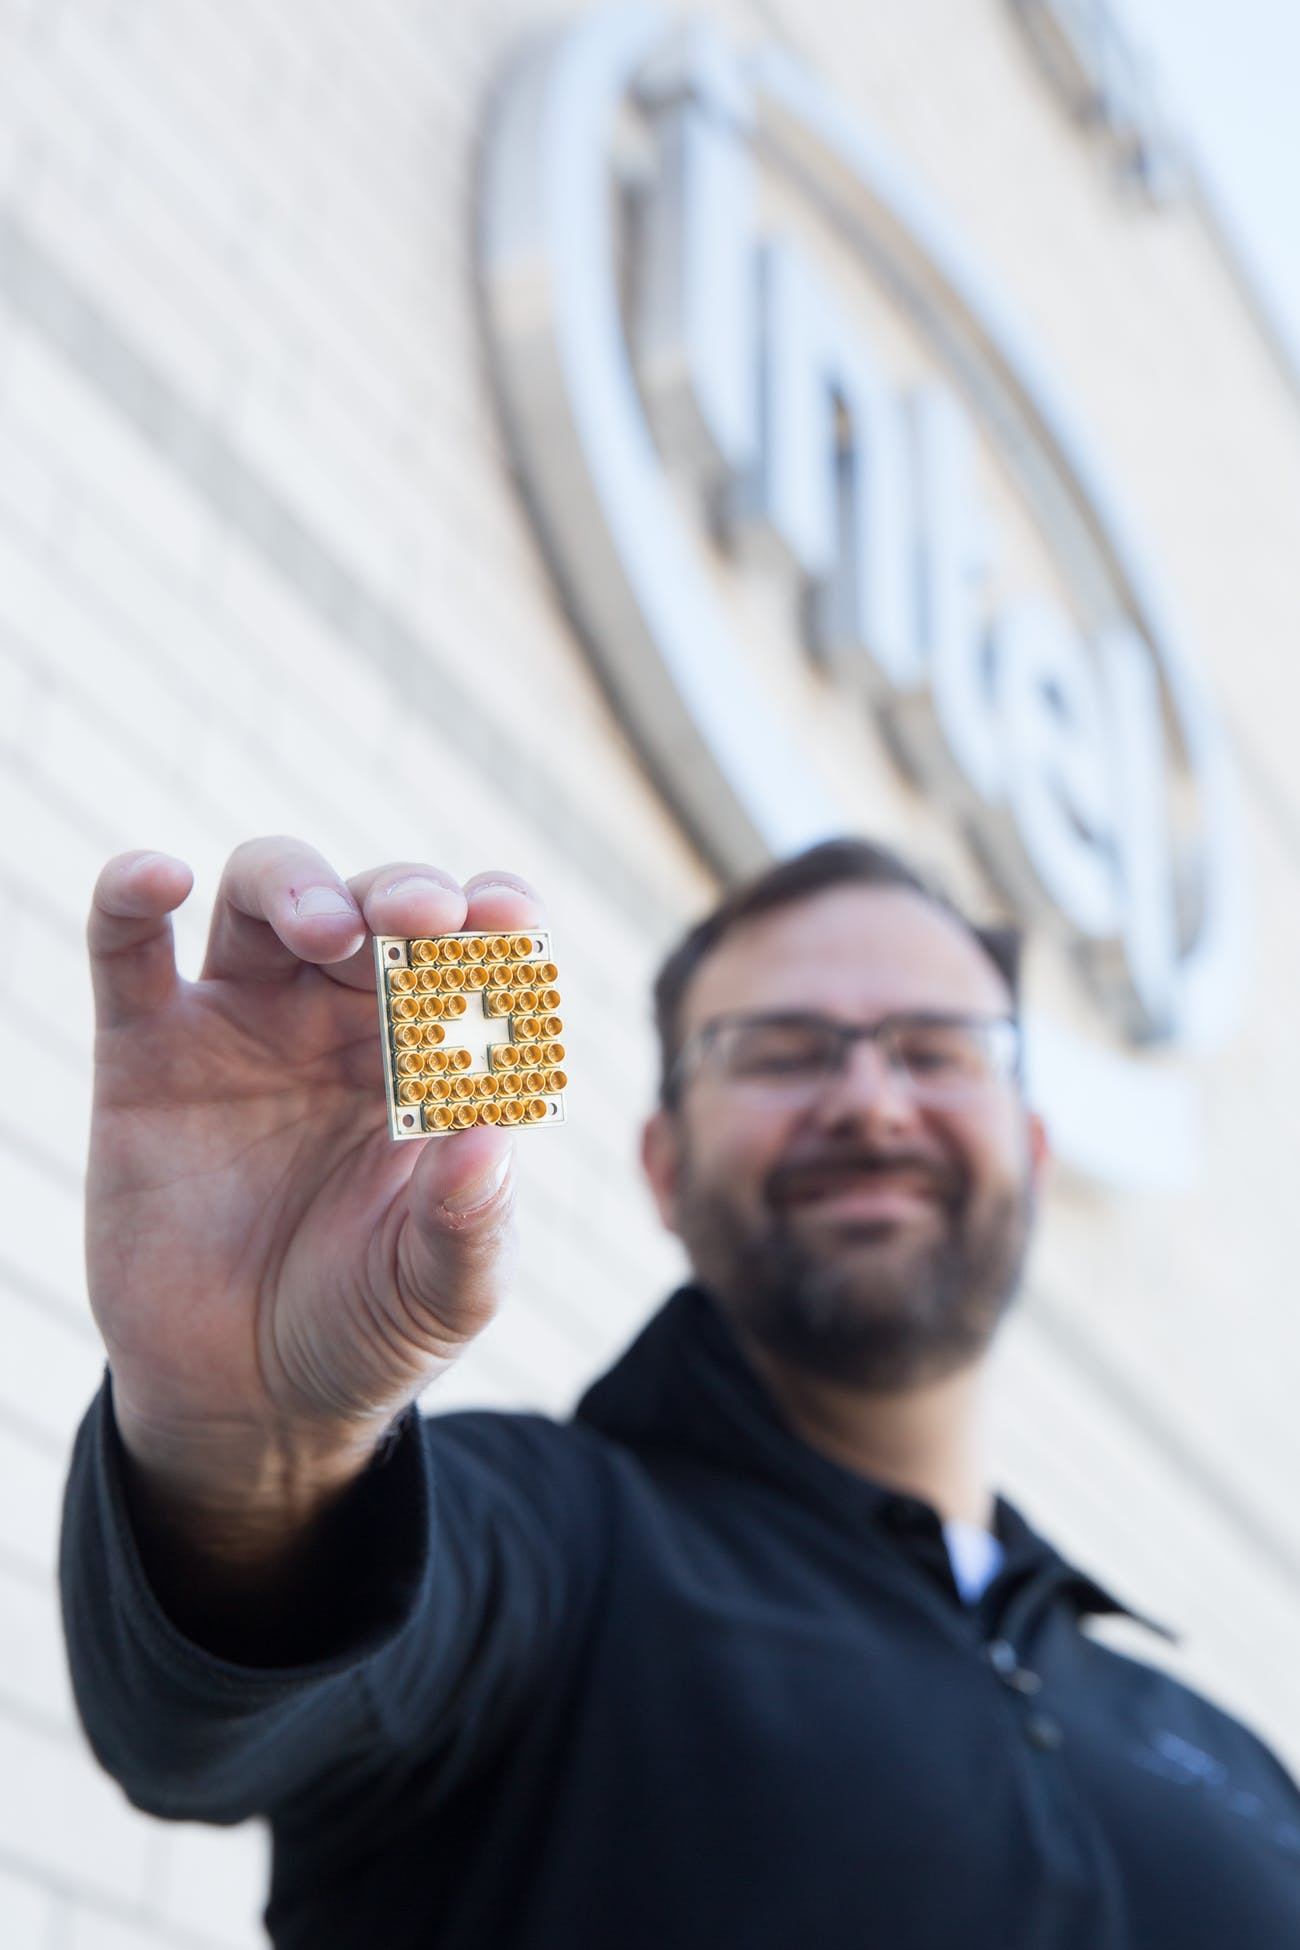 Intel's director of quantum hardware, Jim Clarke, holds the new 17-qubit superconducting test chip.